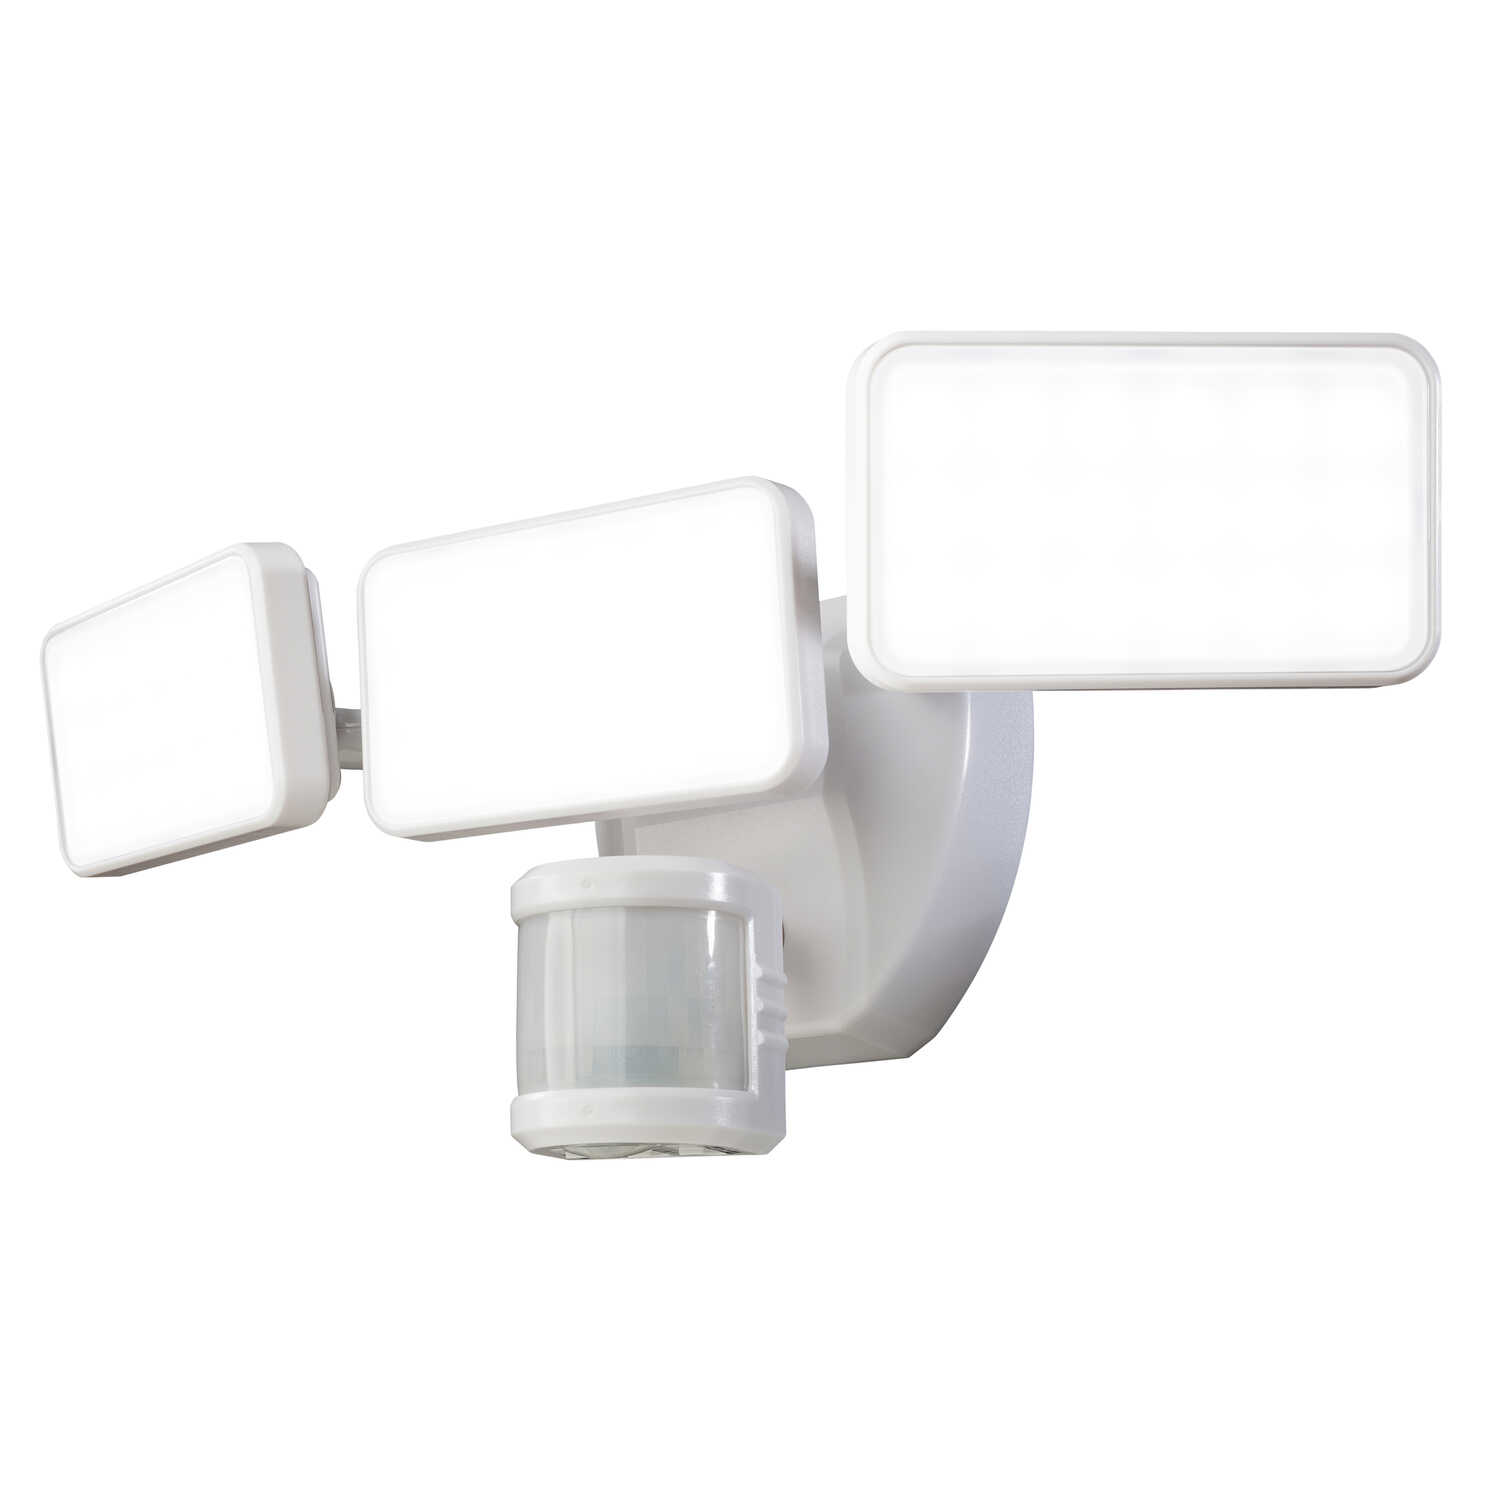 Heath Zenith  Plastic  LED  Motion-Sensing  Security Wall Light  White  Hardwired